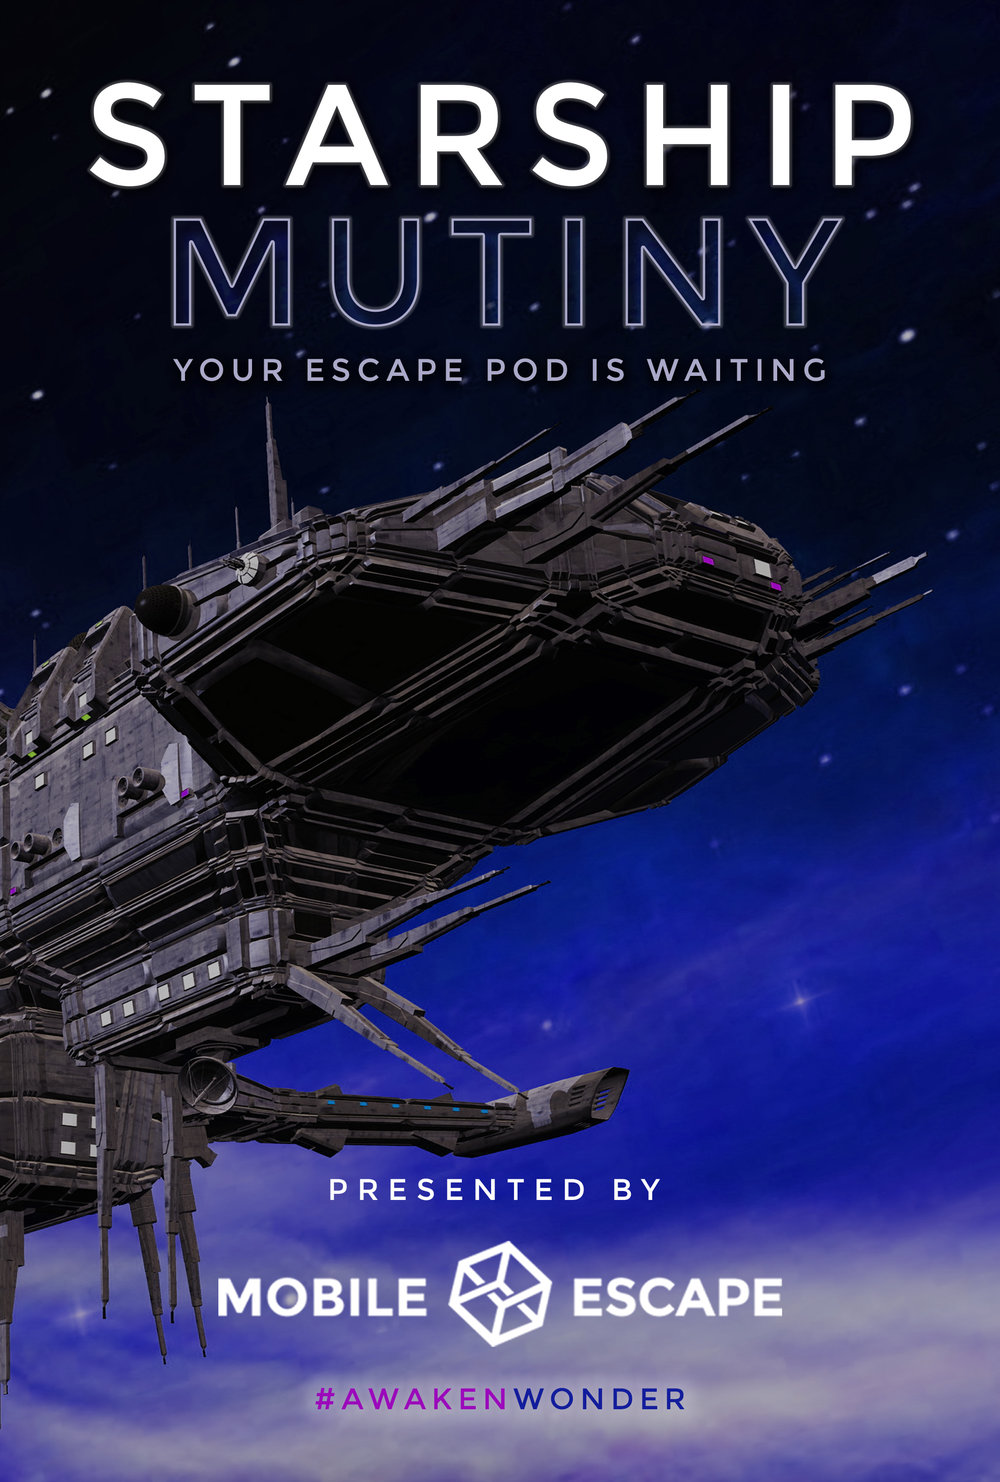 Mobile Escape Room Poster - Starship Mutiny.jpg